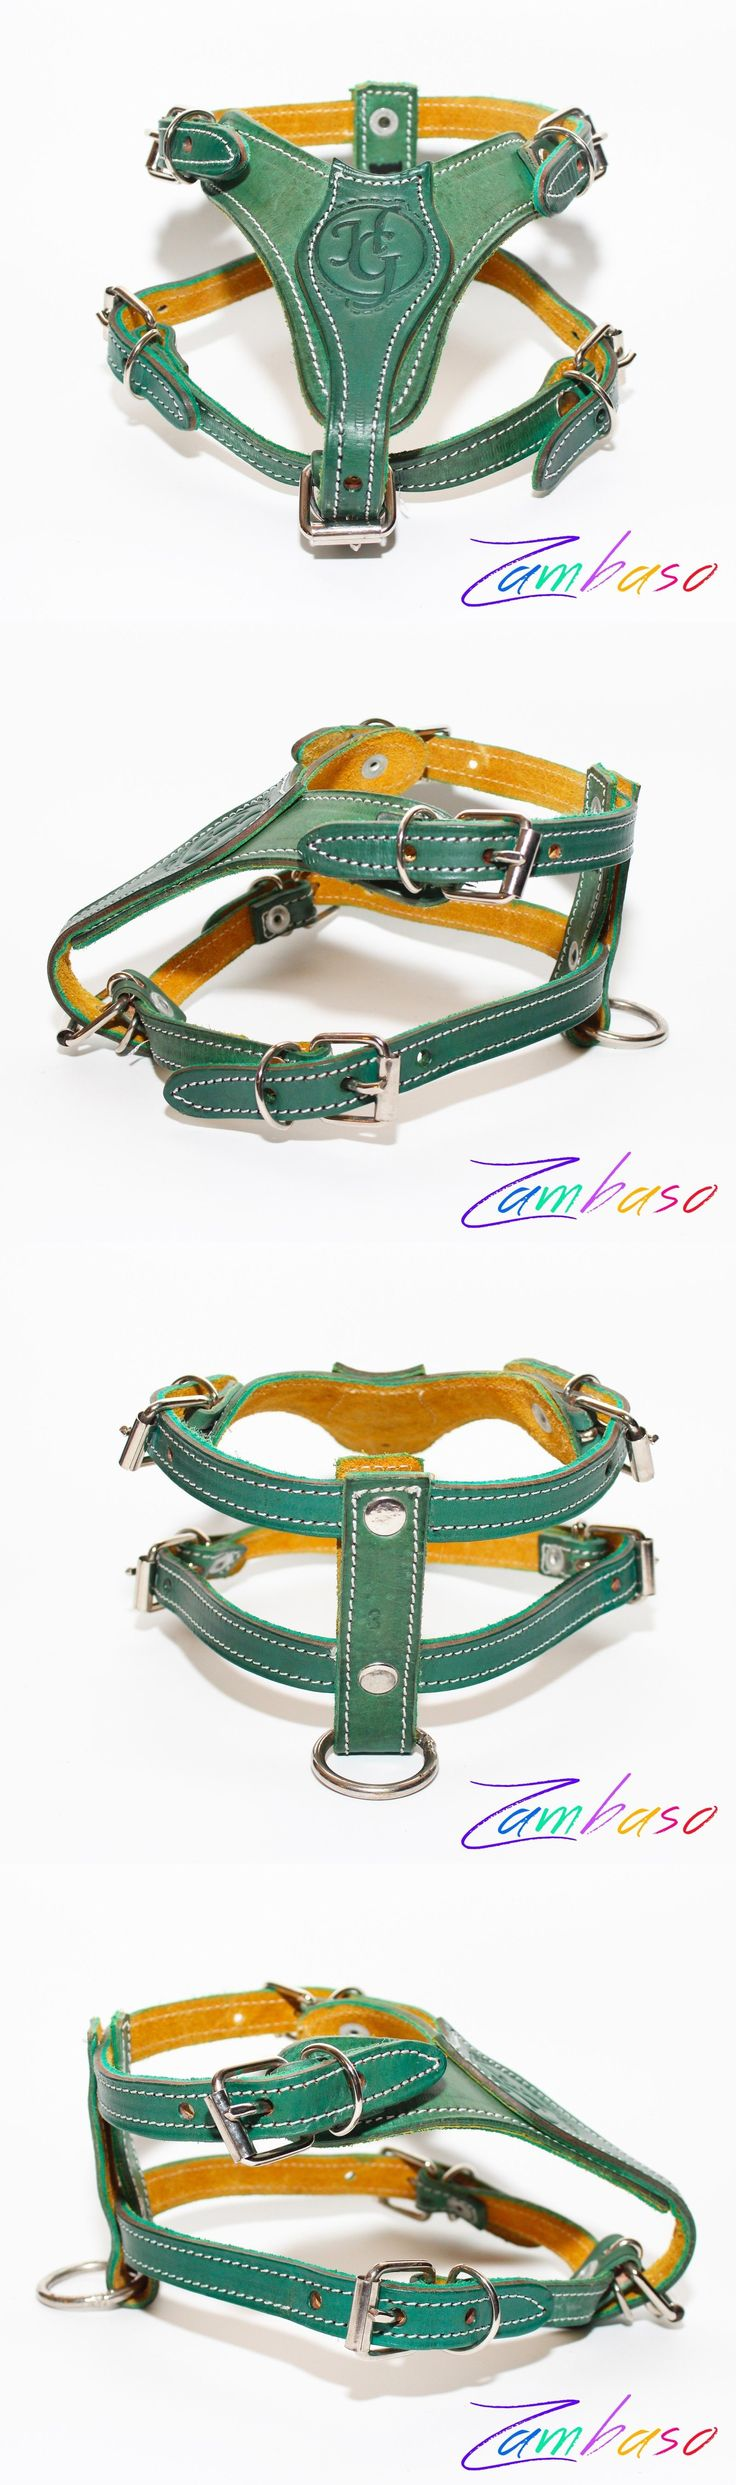 Harnesses 66783: Genuine Green Leather Dog Pulling Chest Harness Adjustable Small Terrier Jrt BUY IT NOW ONLY: $39.95